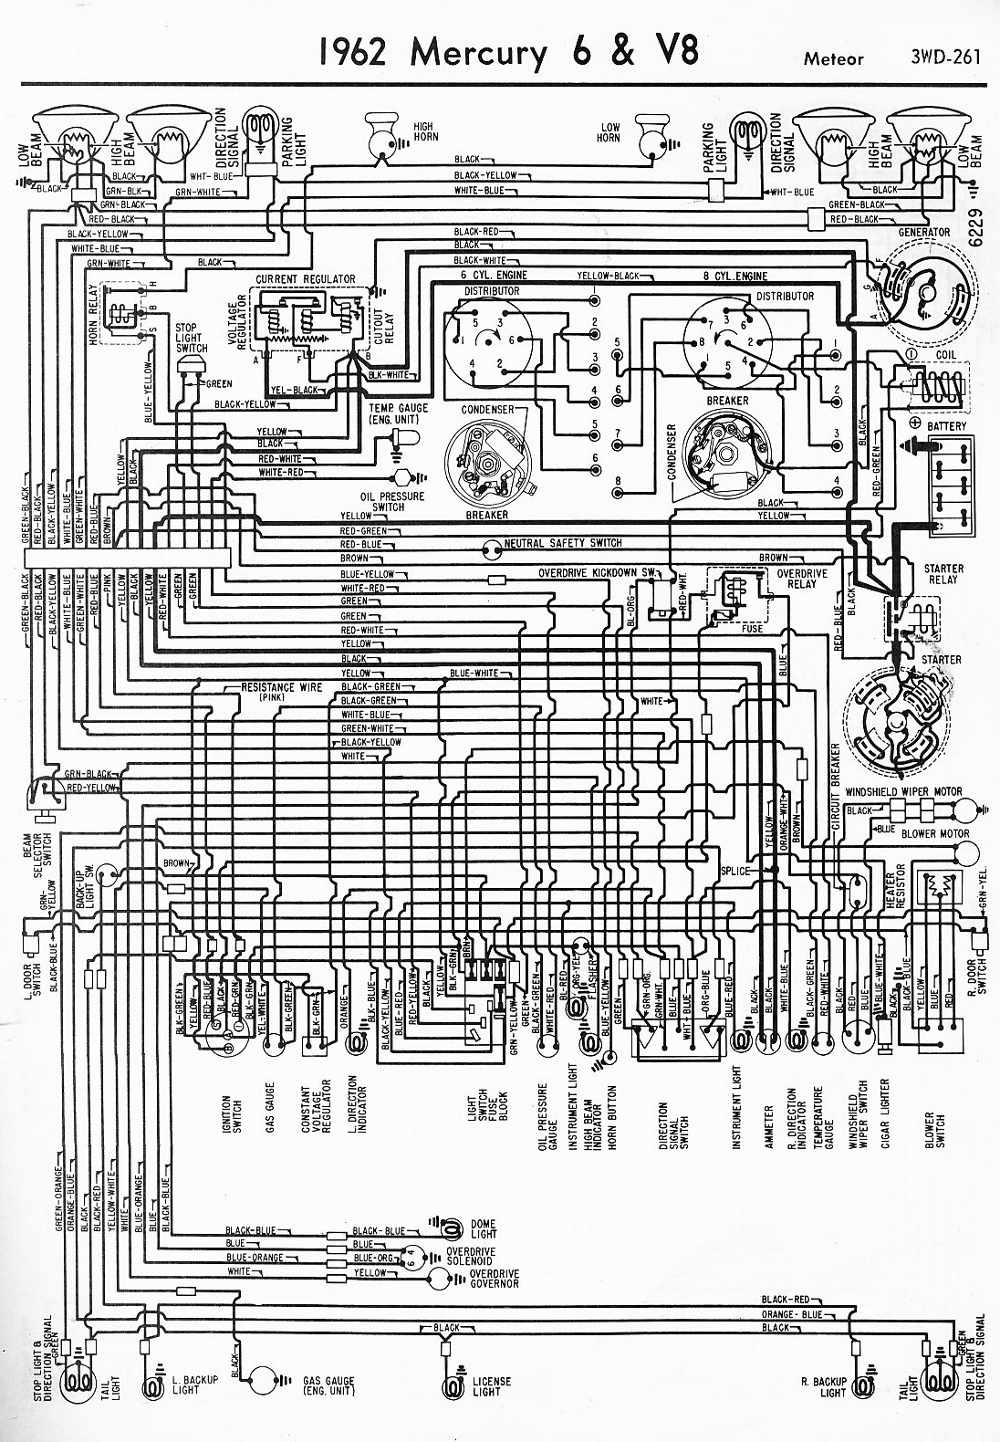 wiring diagrams 911 december 2011 rh wiringdiagrams911 blogspot com Mercury Outboard Wiring Schematic Diagram Mercury 115 Wiring Diagram